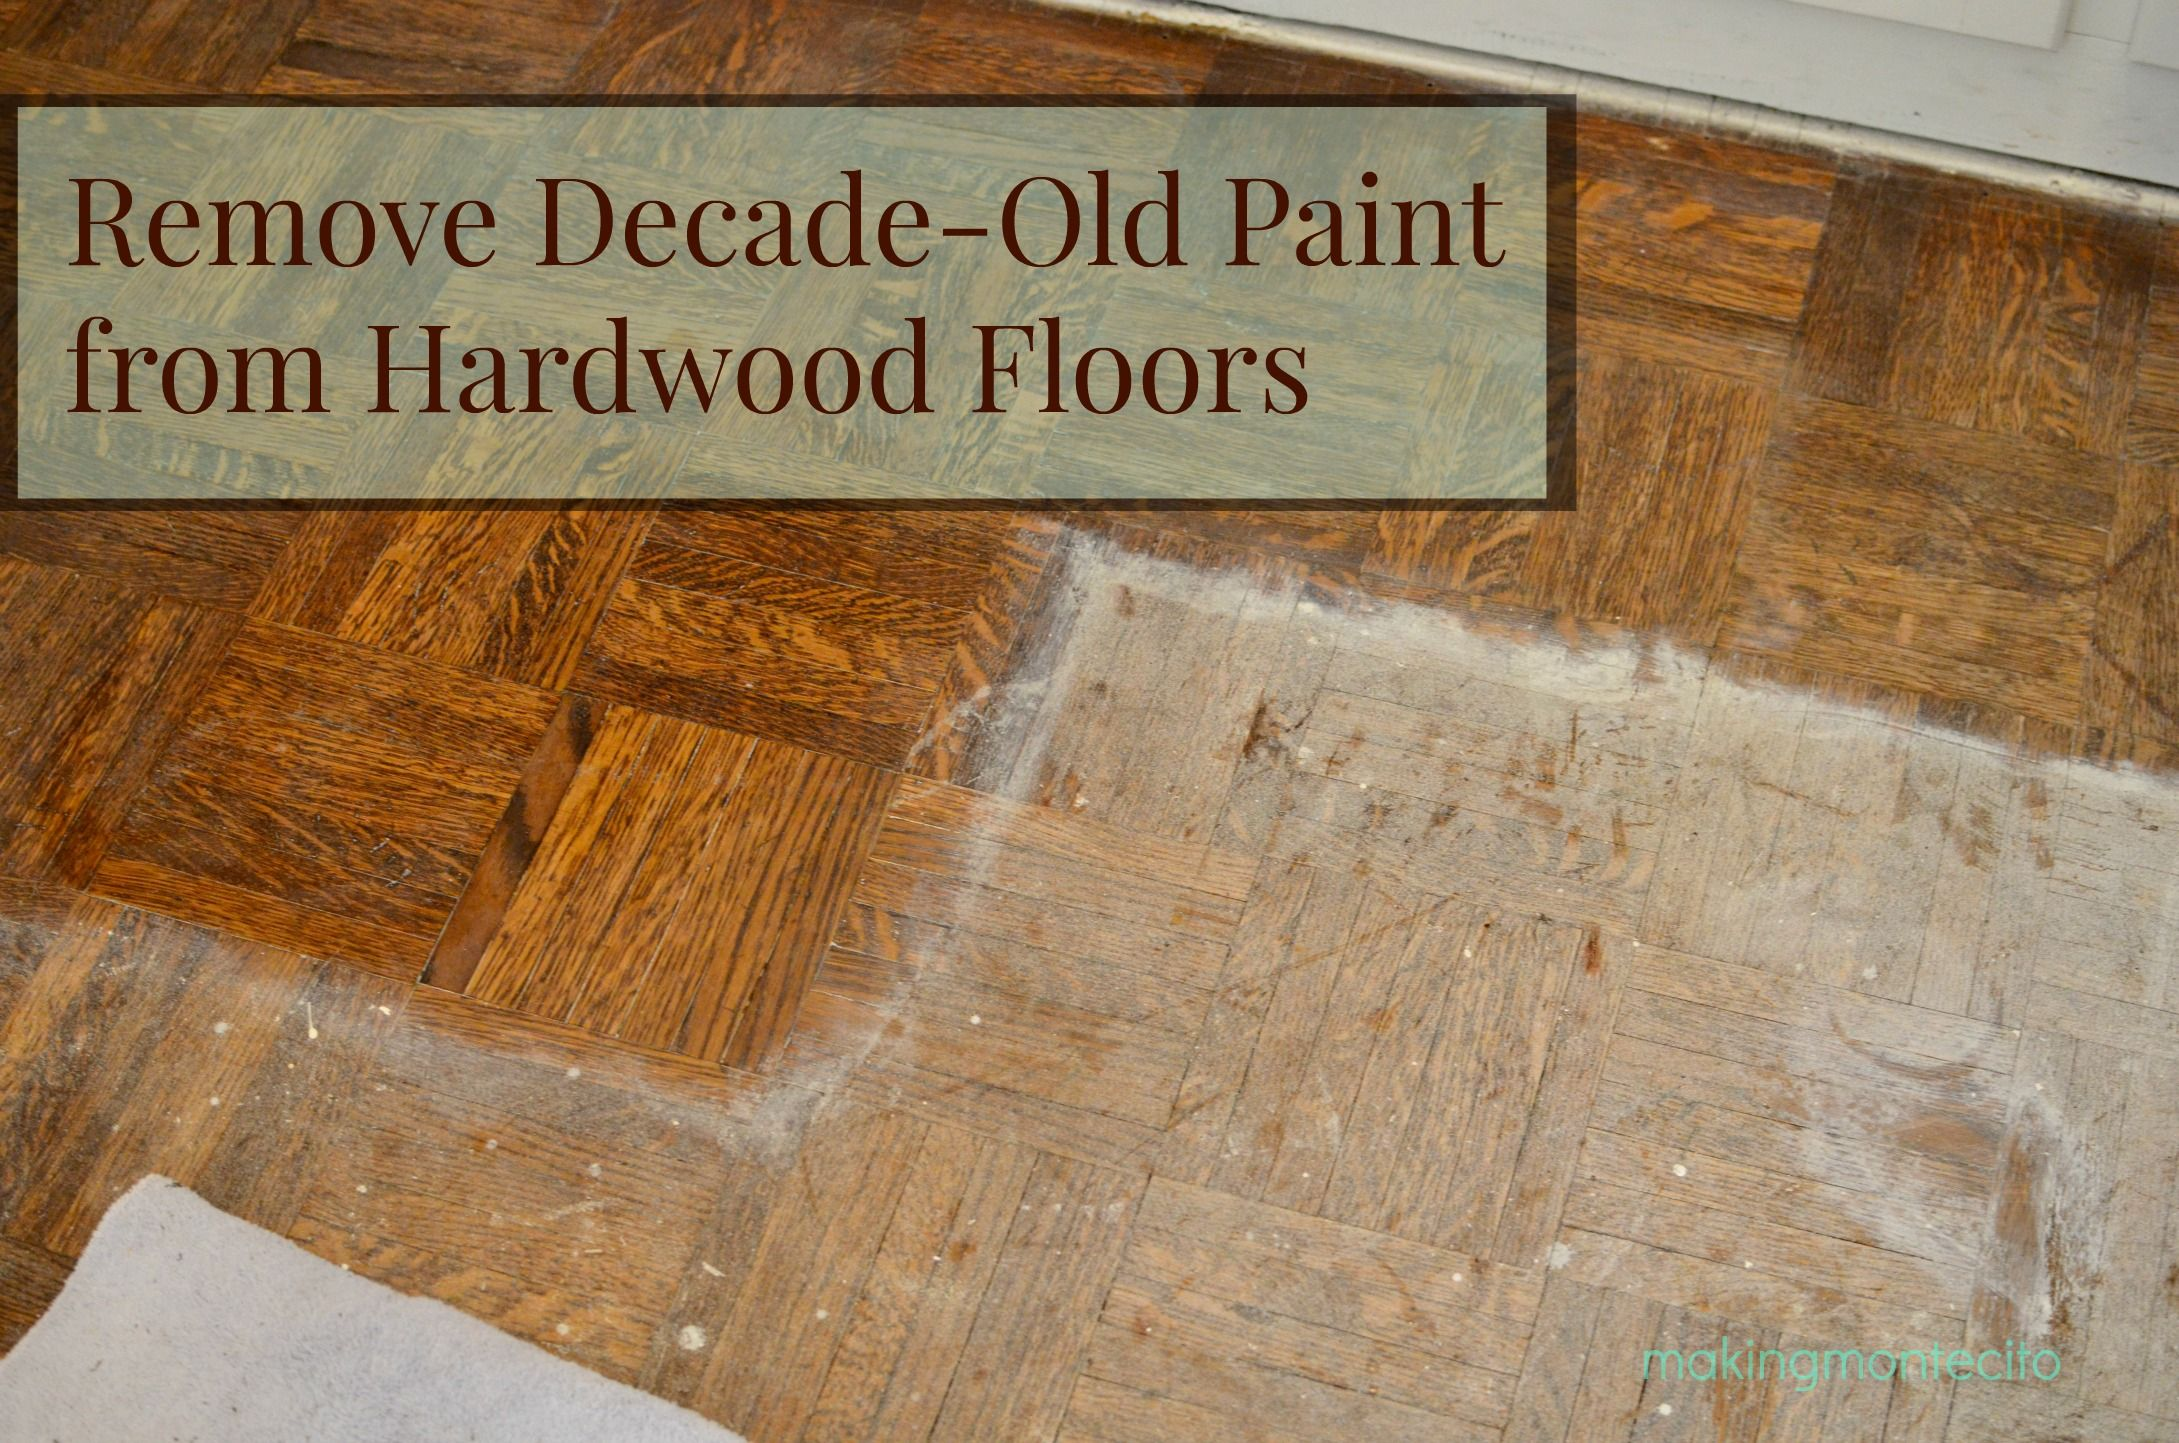 Best of best way to remove paint off hardwood floors and